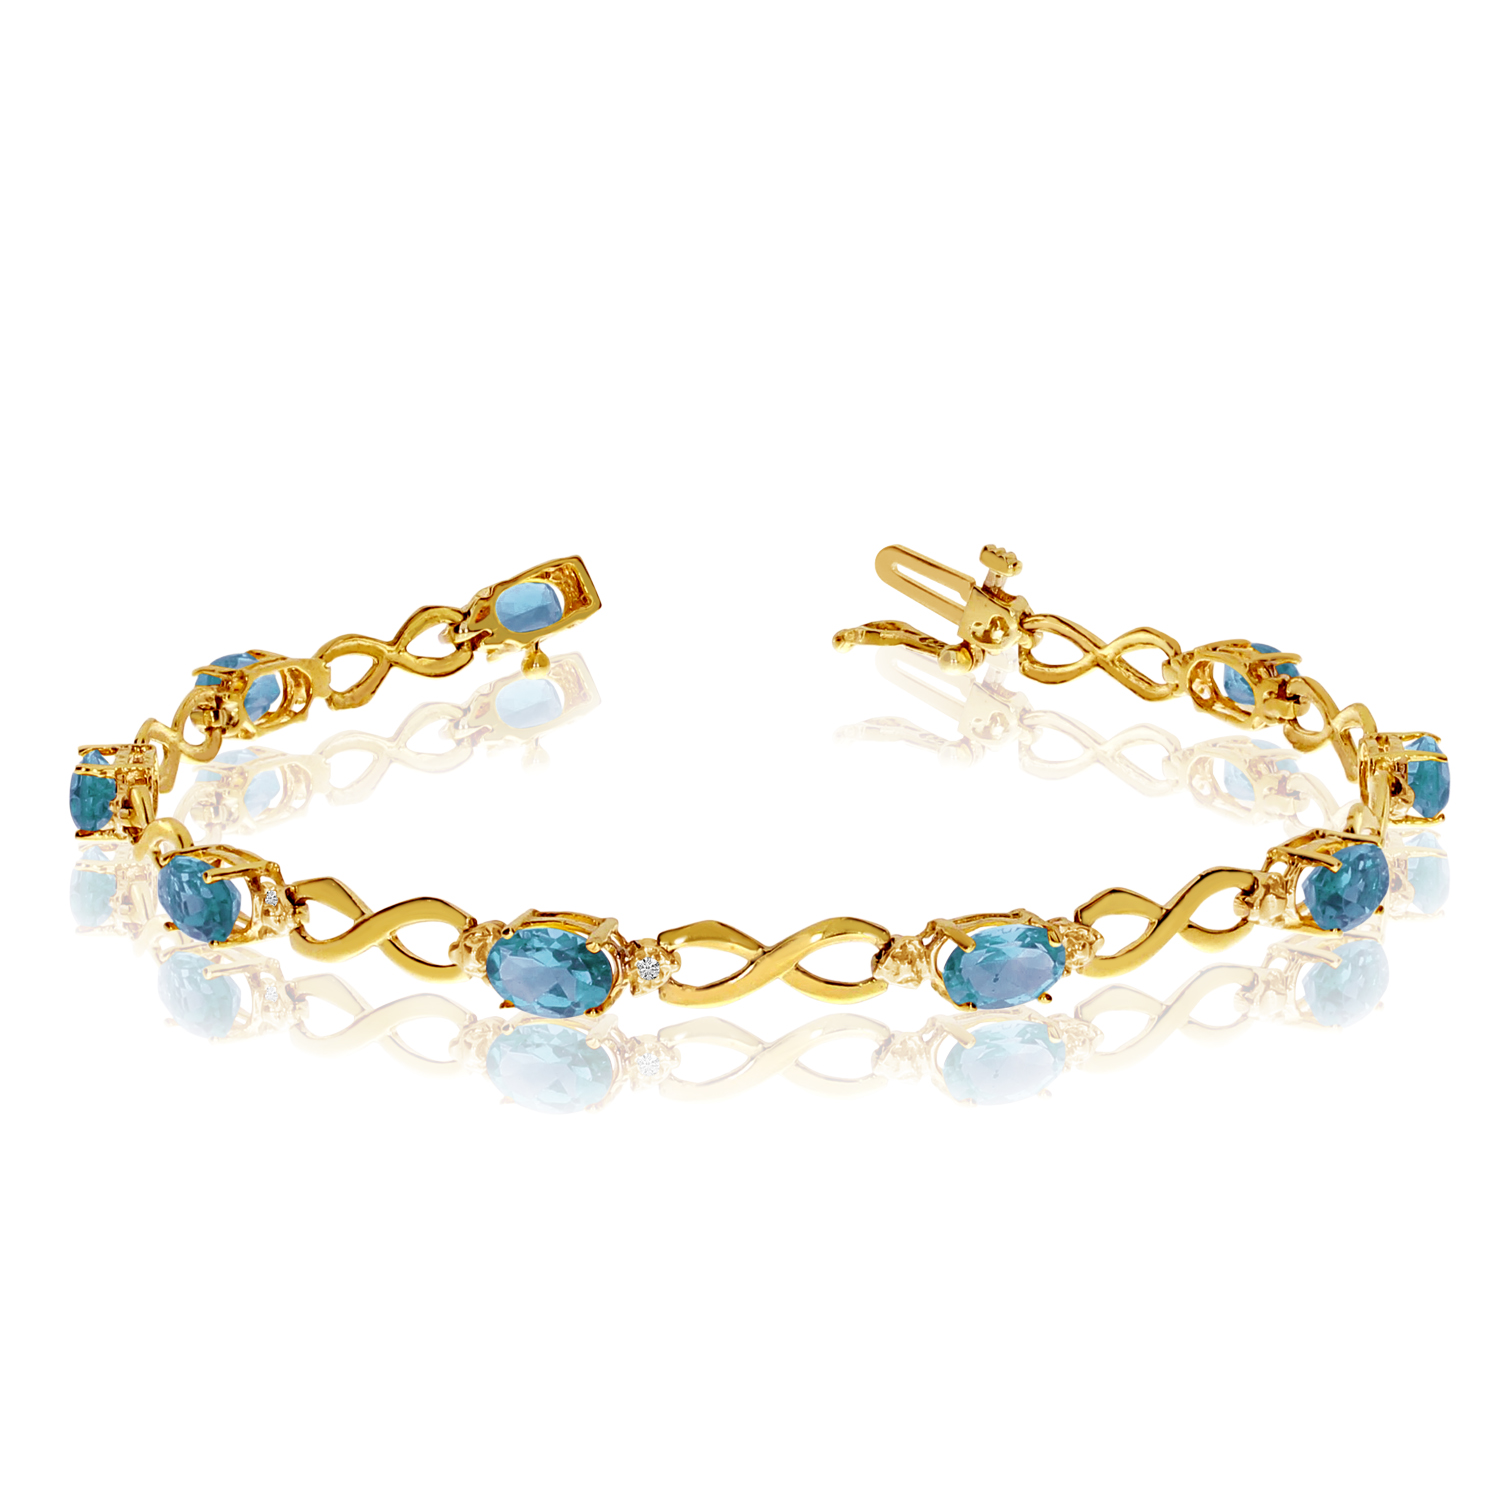 14K Yellow Gold Oval Blue Topaz and Diamond Bracelet by LCD